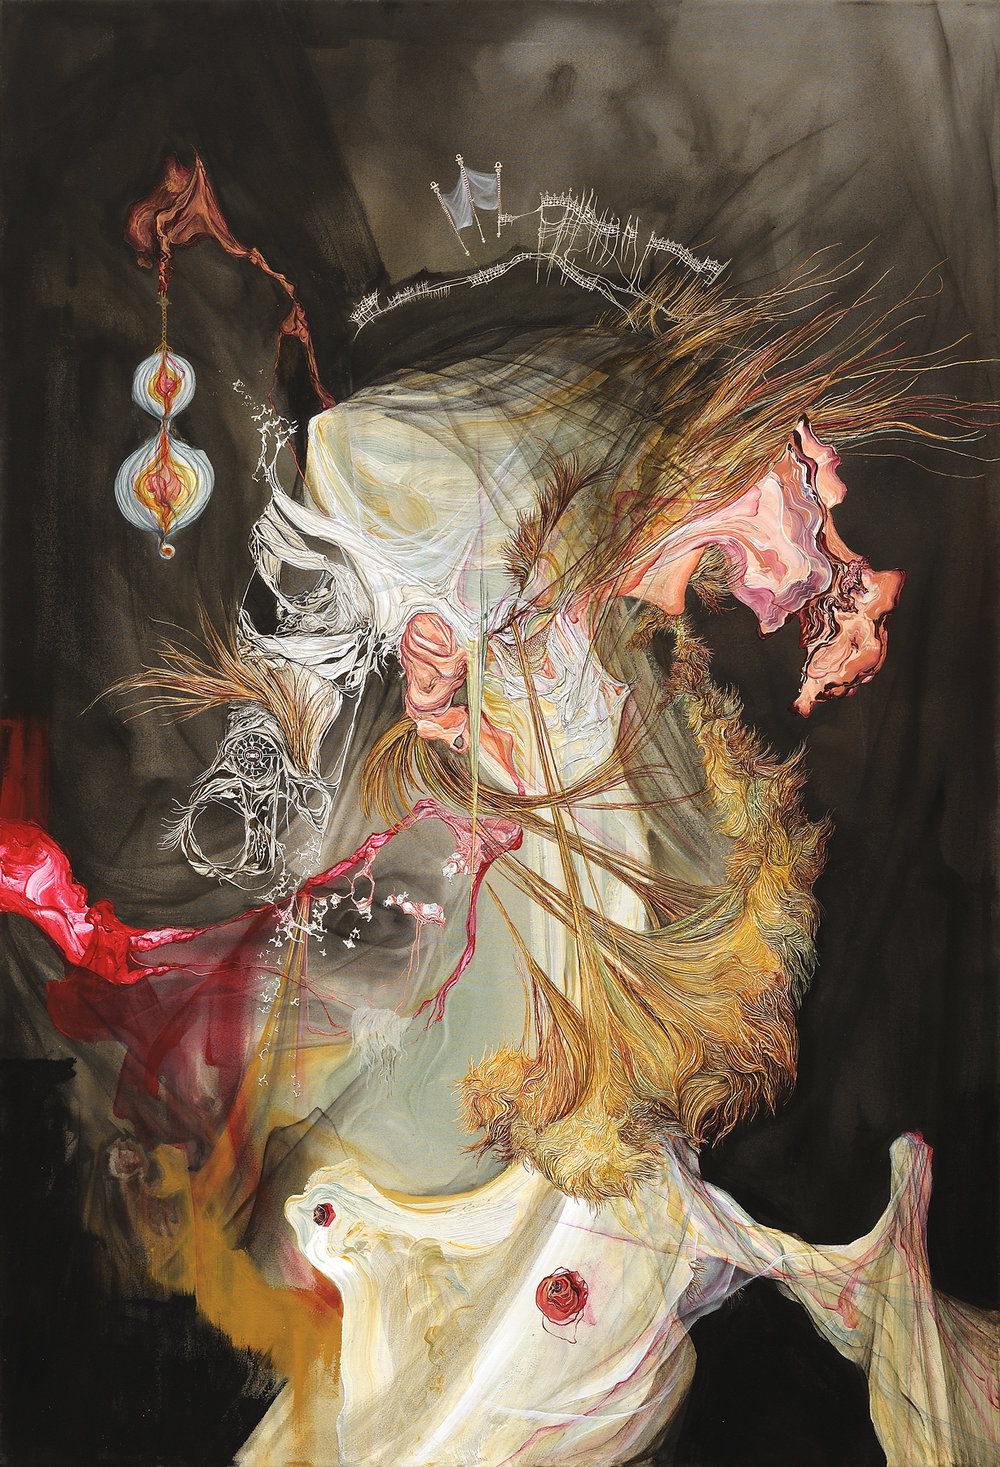 Kate Eric,  No No Uncle 4,  2011, Acrylic on canvas, 64 x 44 inches (163 X 180 cm)